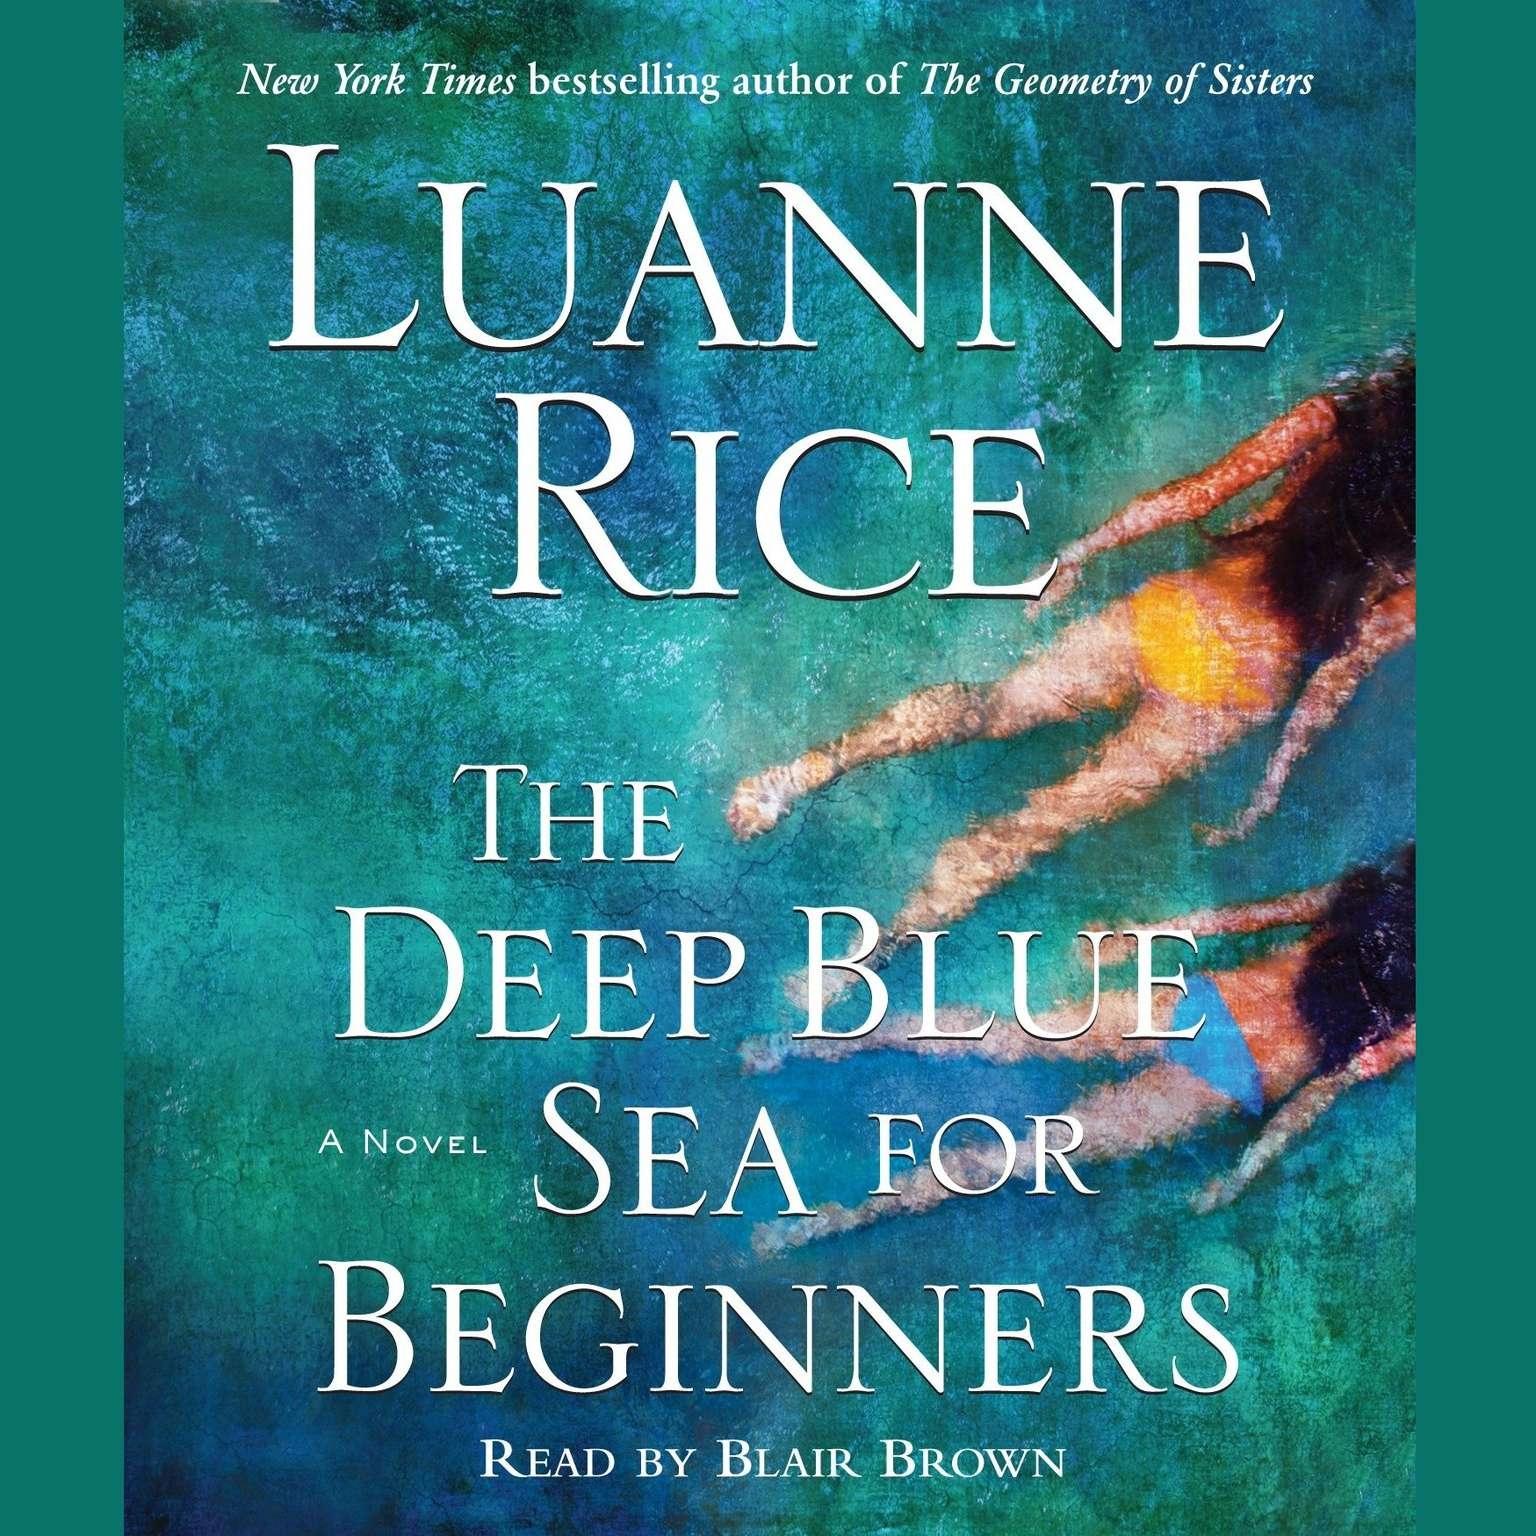 Printable The Deep Blue Sea for Beginners: A Novel Audiobook Cover Art